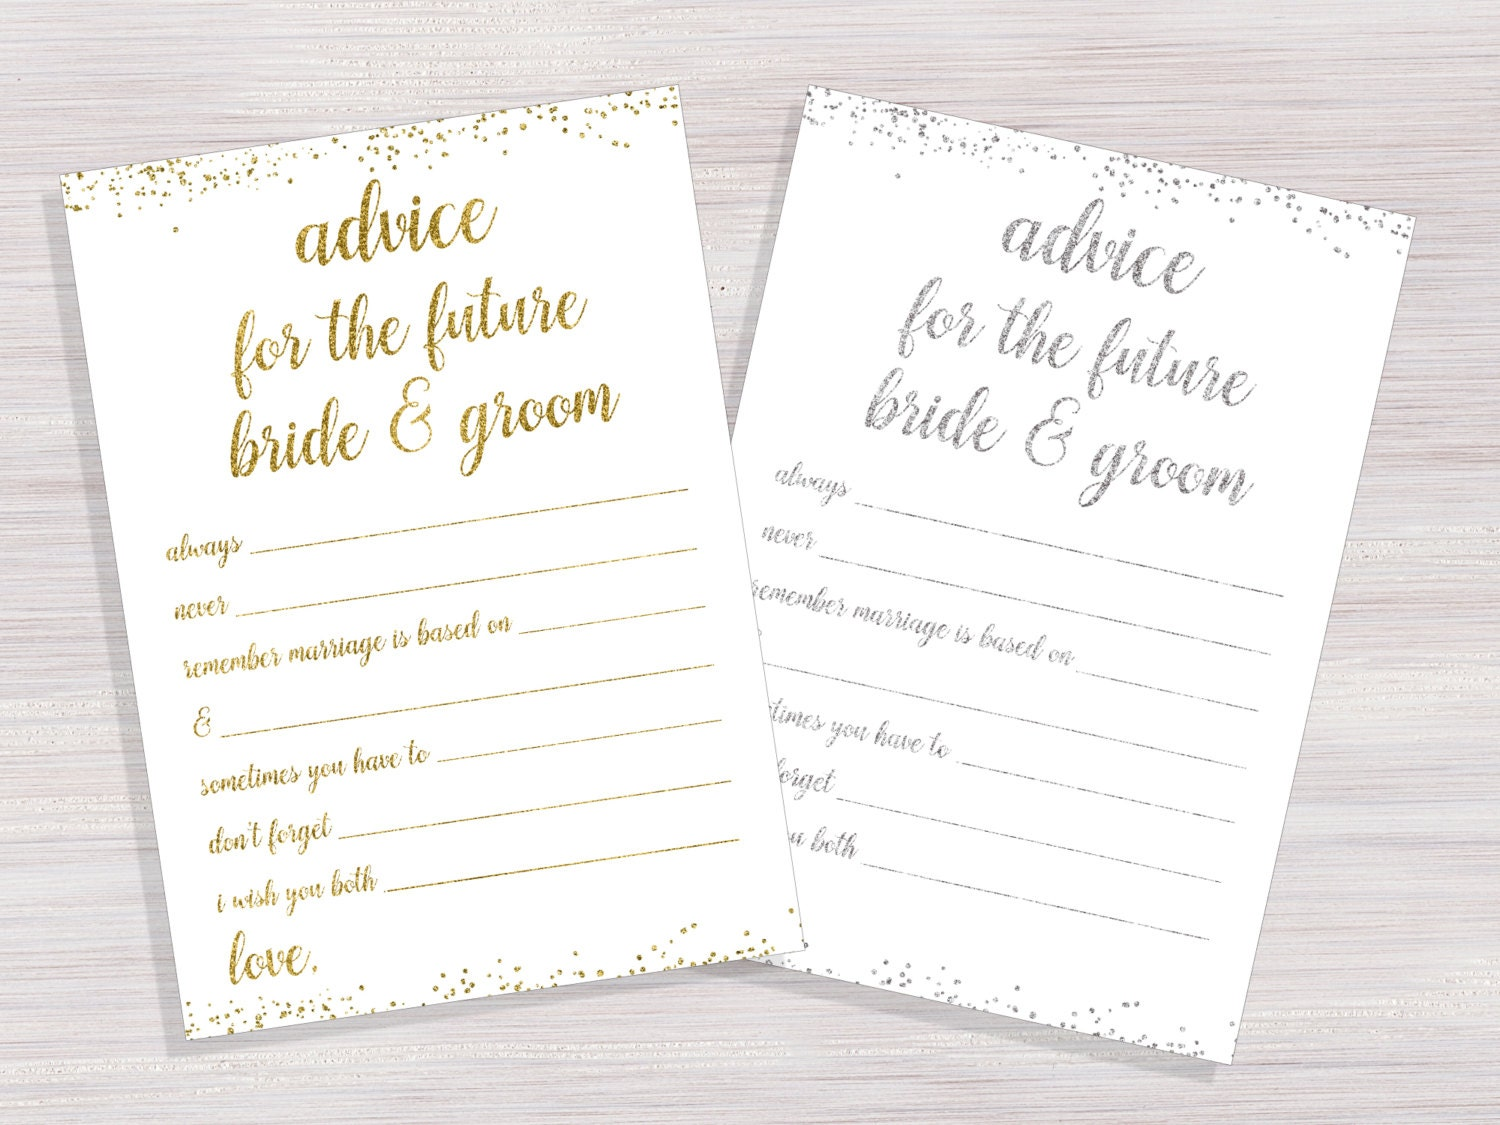 photo about Free Printable Bridal Shower Advice Cards named absolutely free wedding ceremony assistance playing cards printable - Think about Plans References